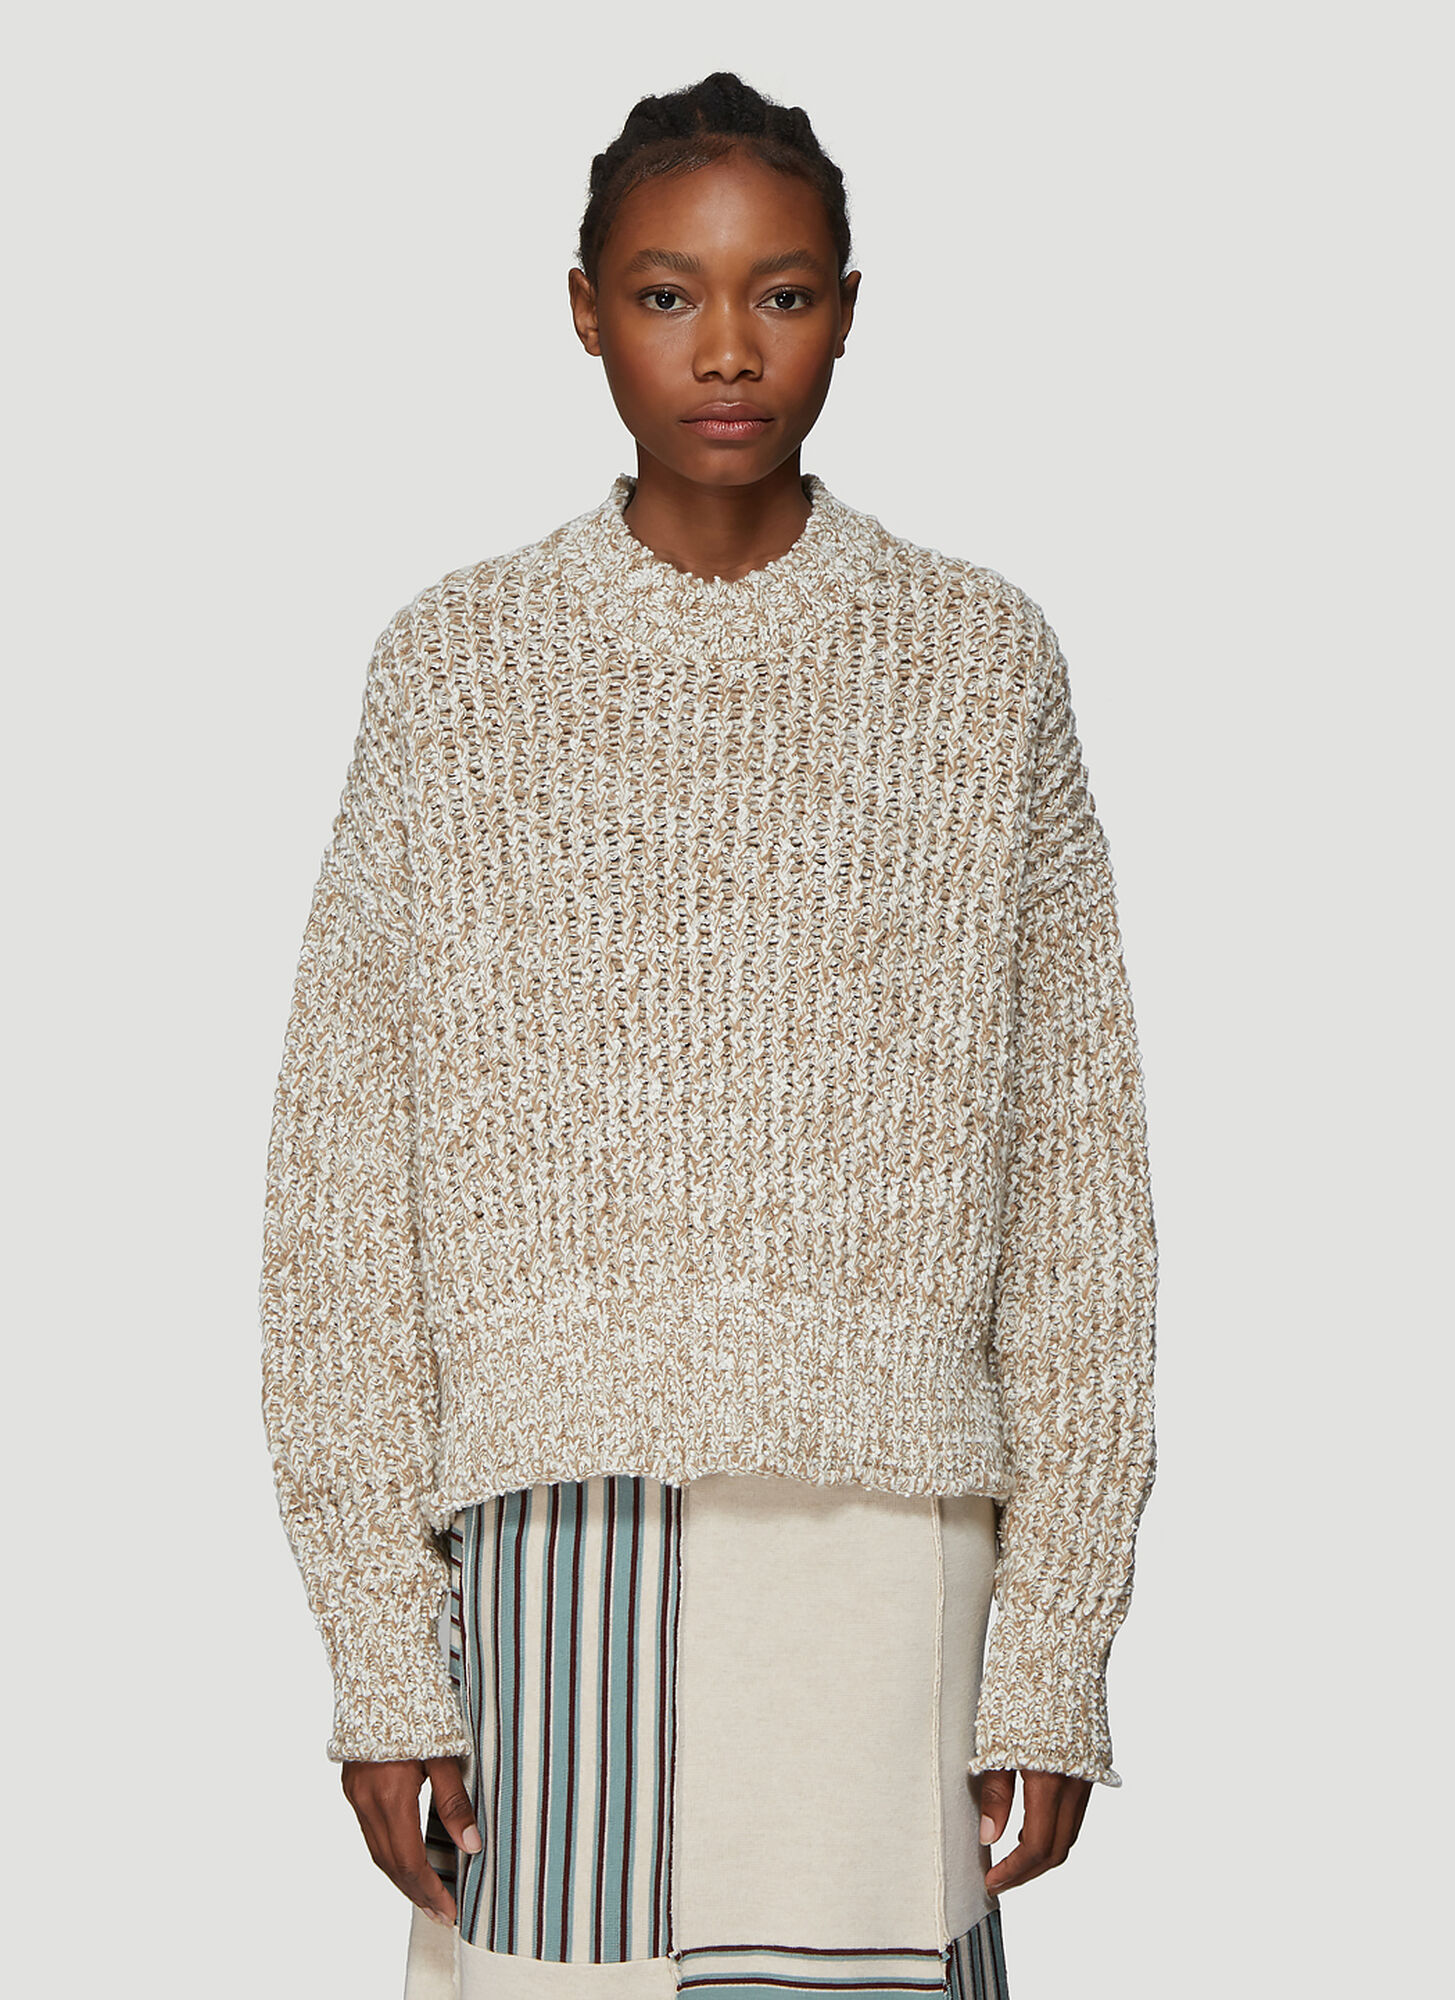 Jil Sander Chunky Knit Sweater in Beige